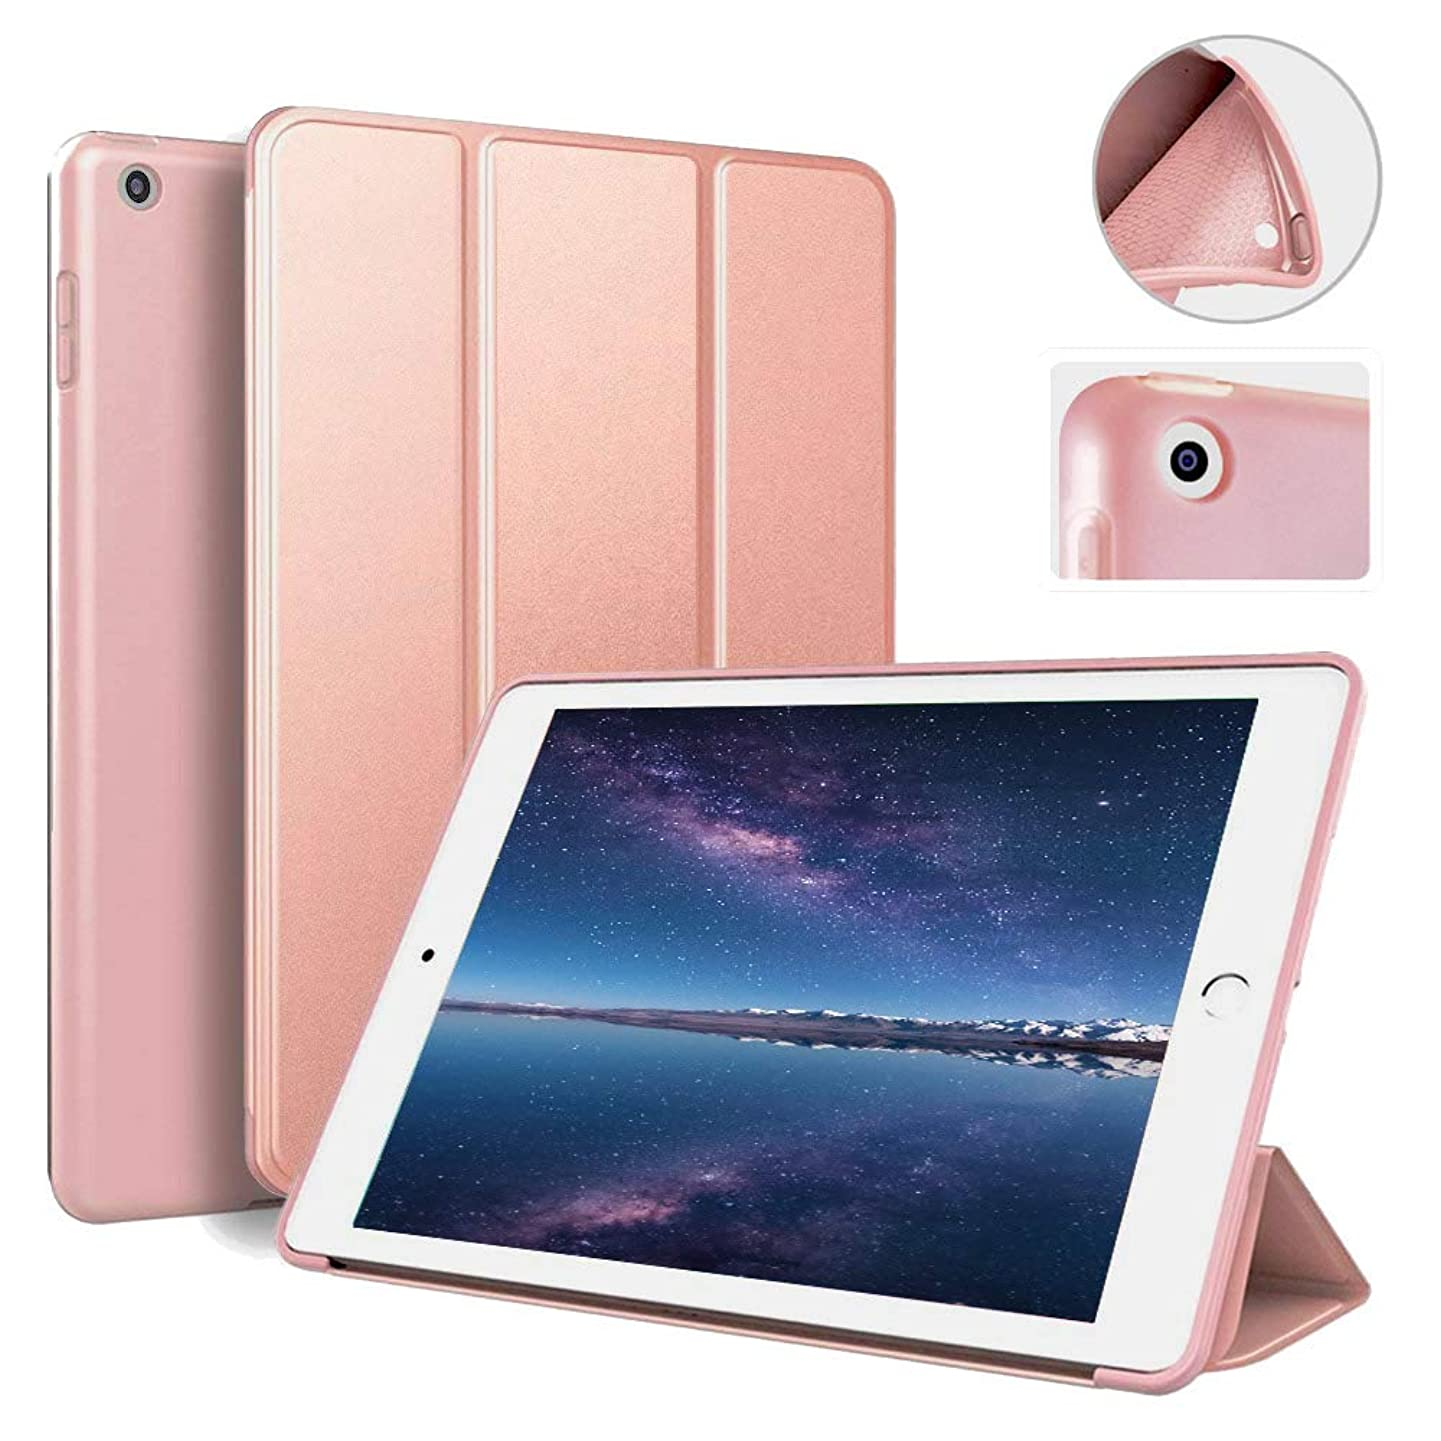 IPad 9.7 inch 2017/2018 Case aoub Ultra Slim Lightweight Smart Trifold Stand Cover with Magnetic Auto Wake & Sleep Function/Soft TPU Back Cover for iPad 5th/6th Generation (Rose Gold)